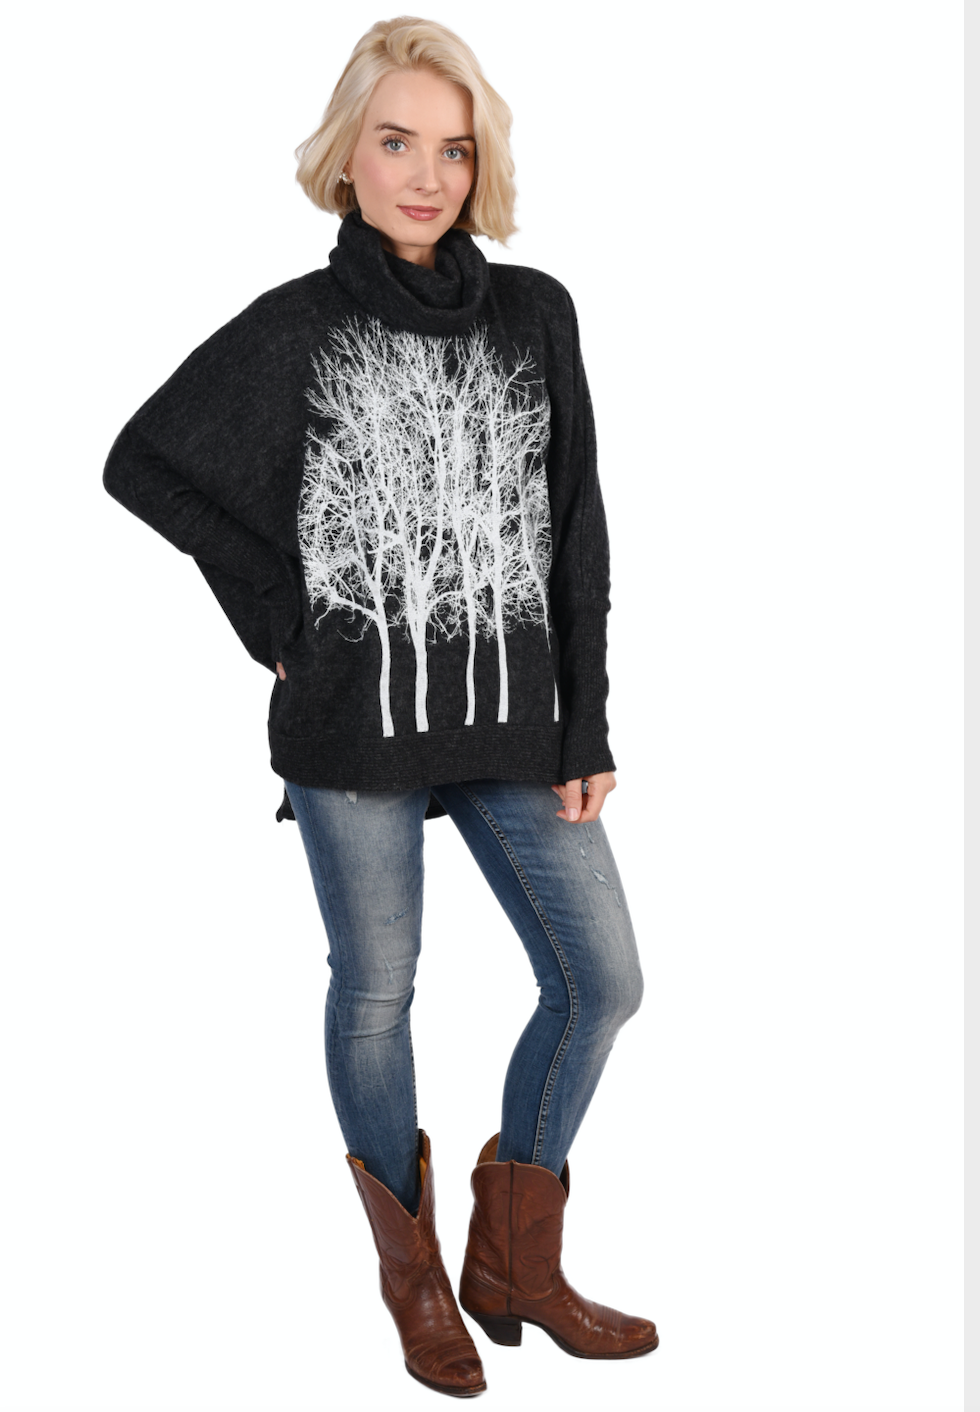 WABI SABI SALE : Fairytale Trees Poncho with Sleeves Charcoal